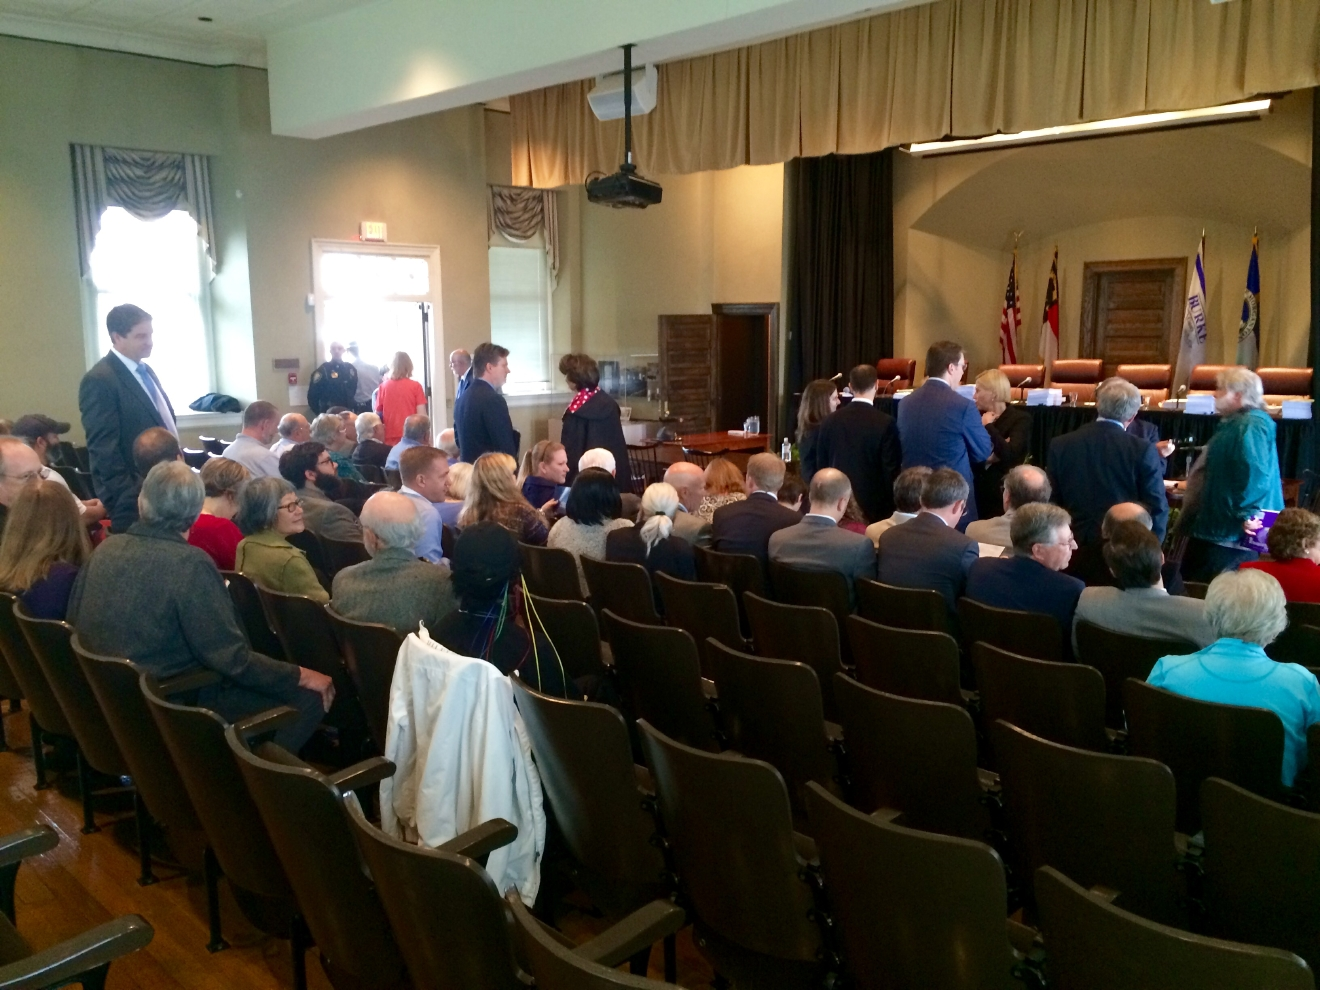 The courtroom fills up. NC Supreme Court tackles the Asheville water system debate (Photo credit: WLOS staff)